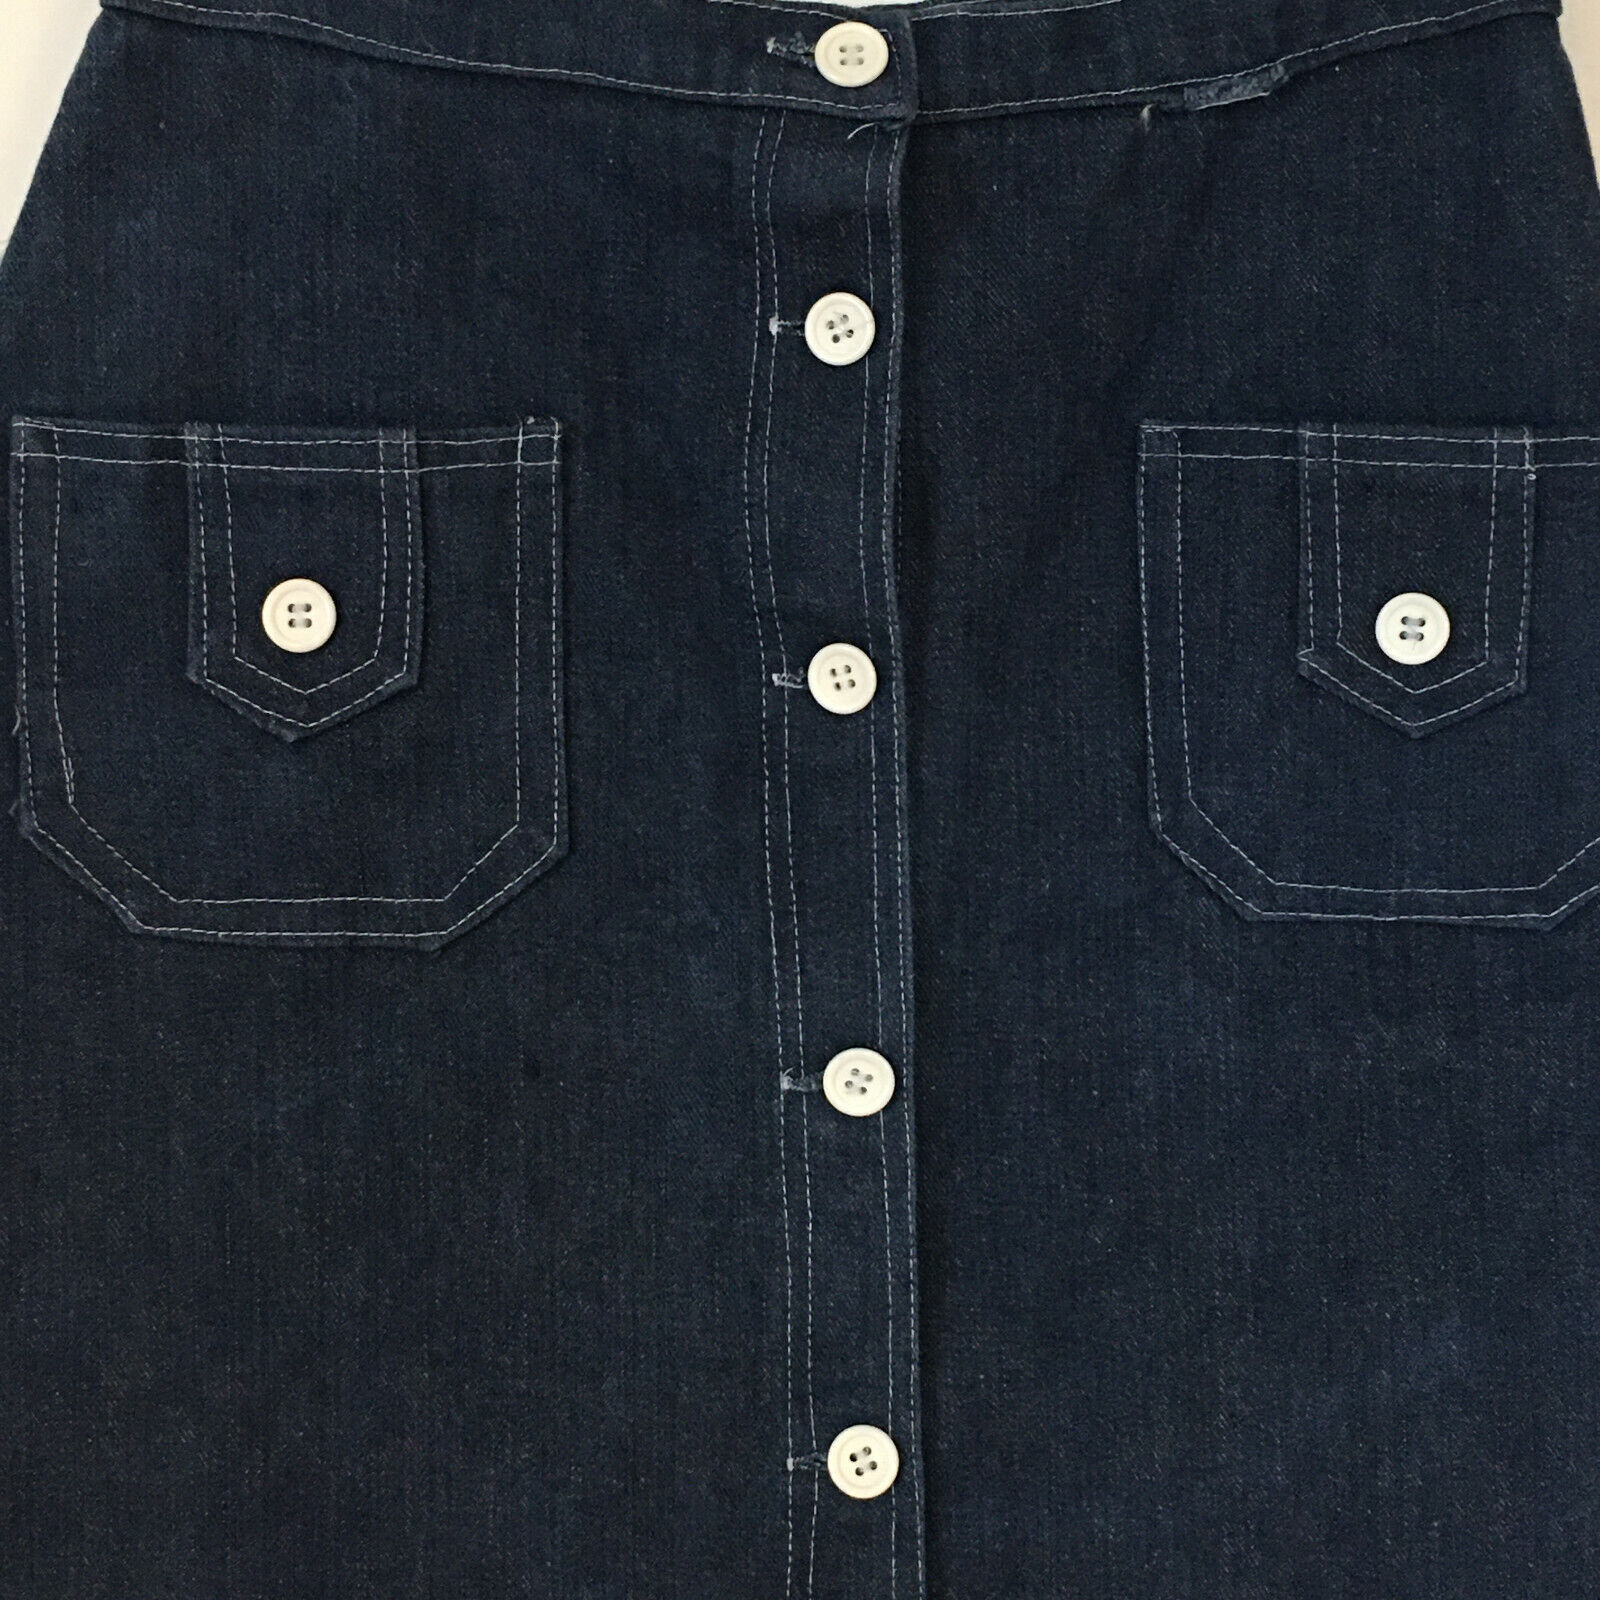 Peekaboo A-Line Vintage Inspired Denim Button Fro… - image 2